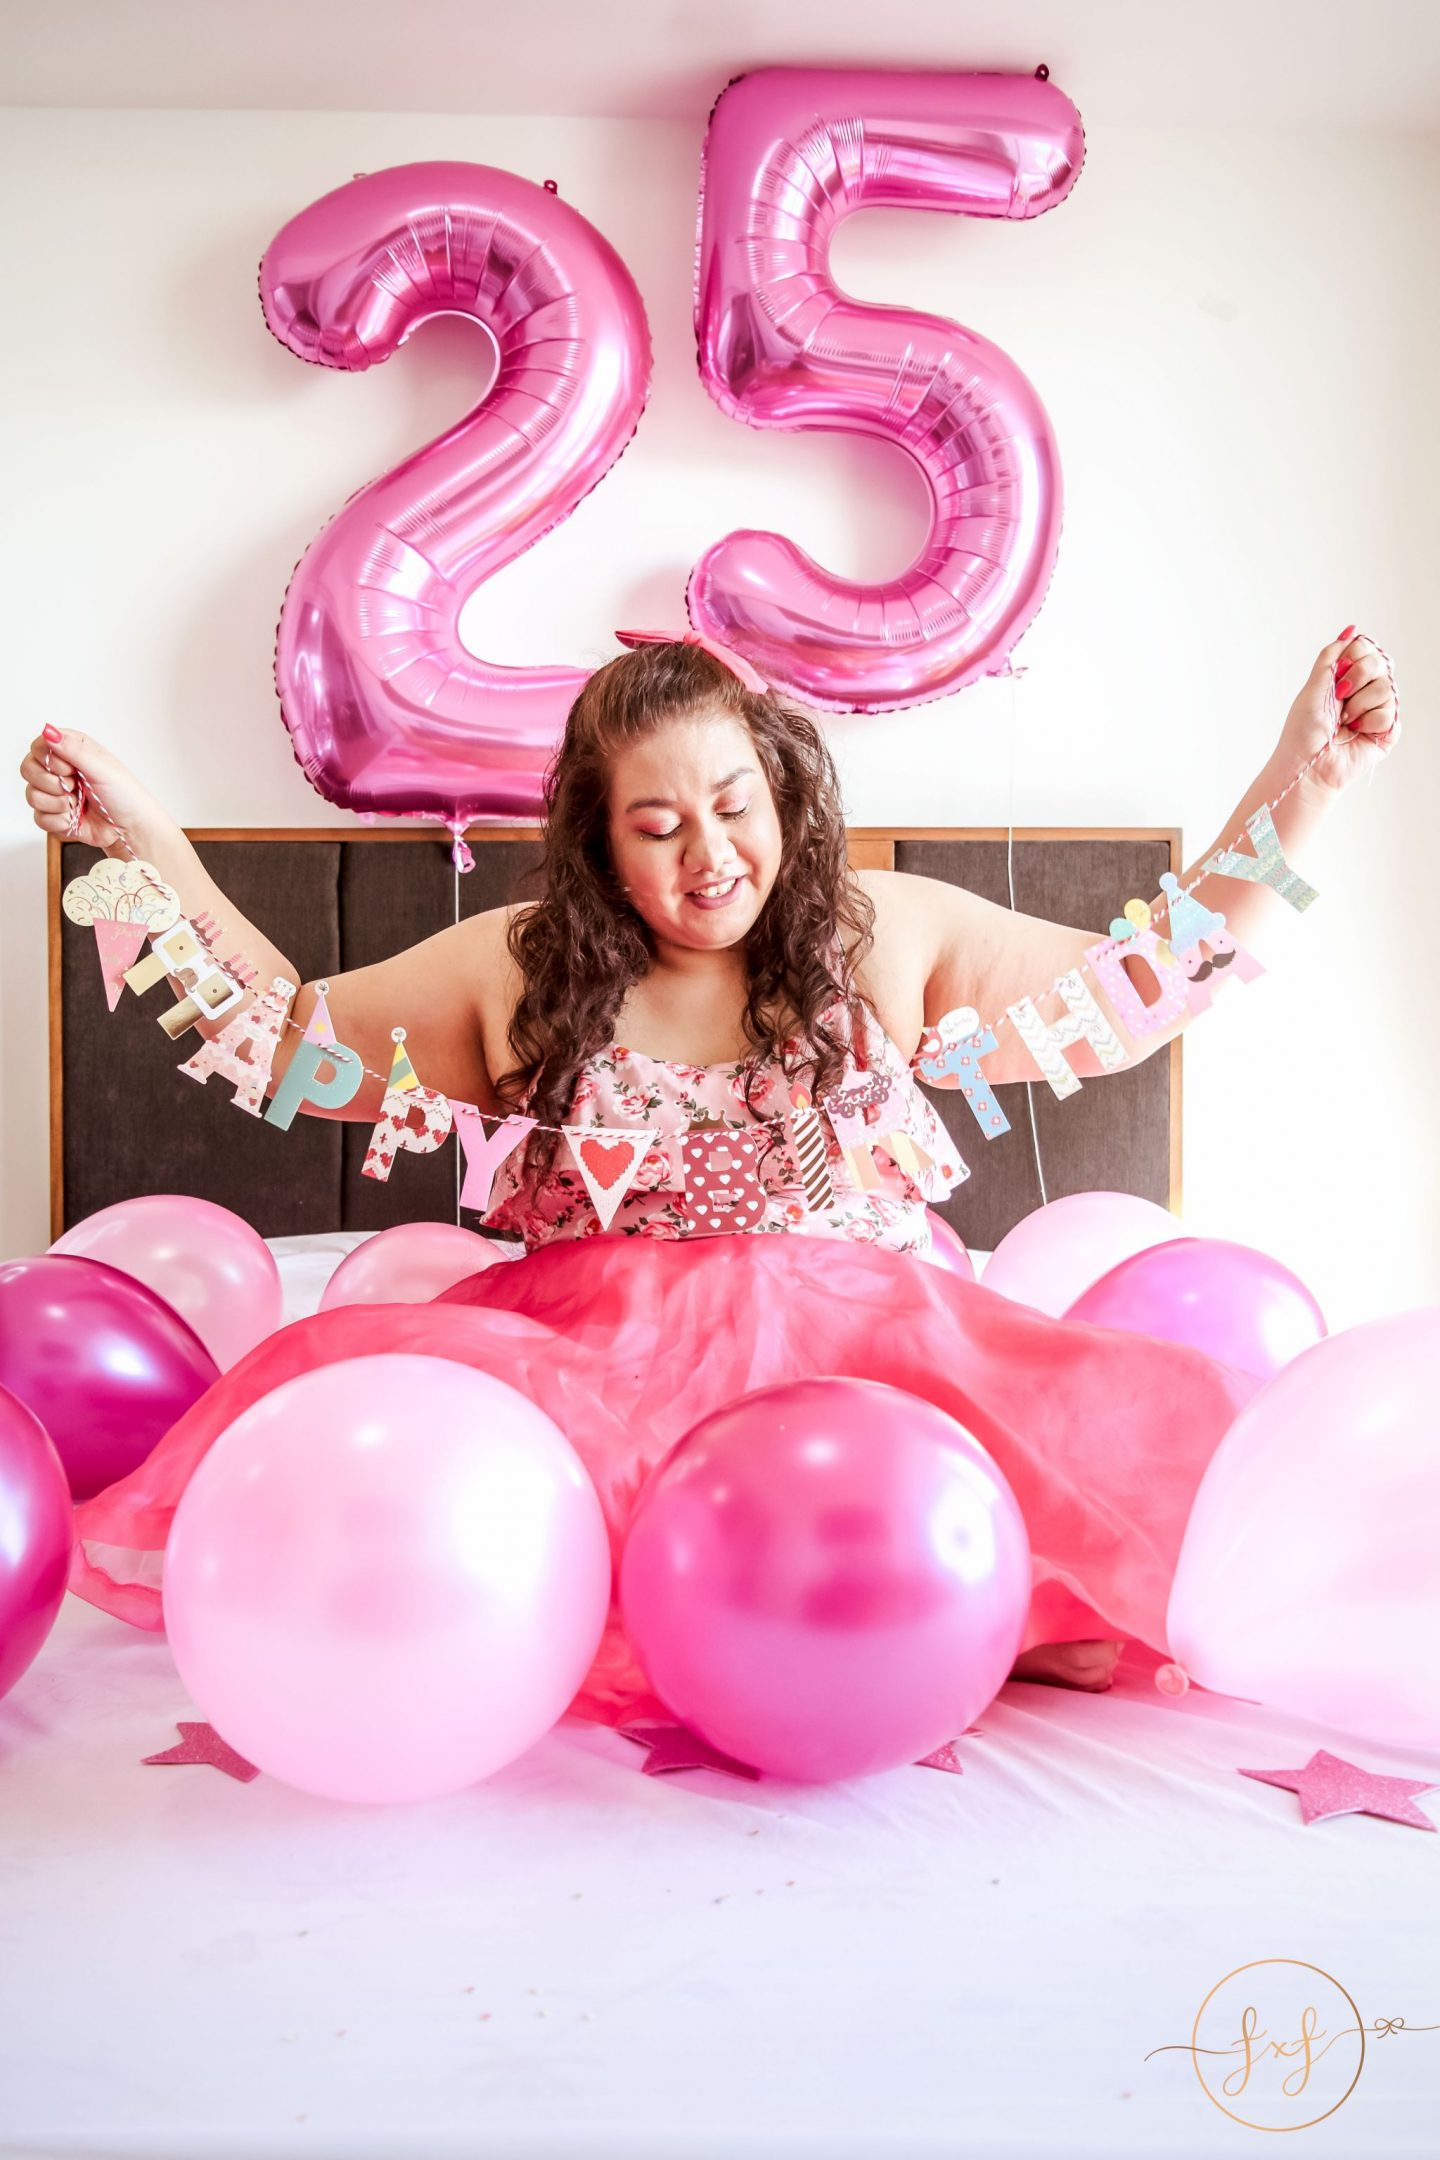 25 things I want to to in my 25th year